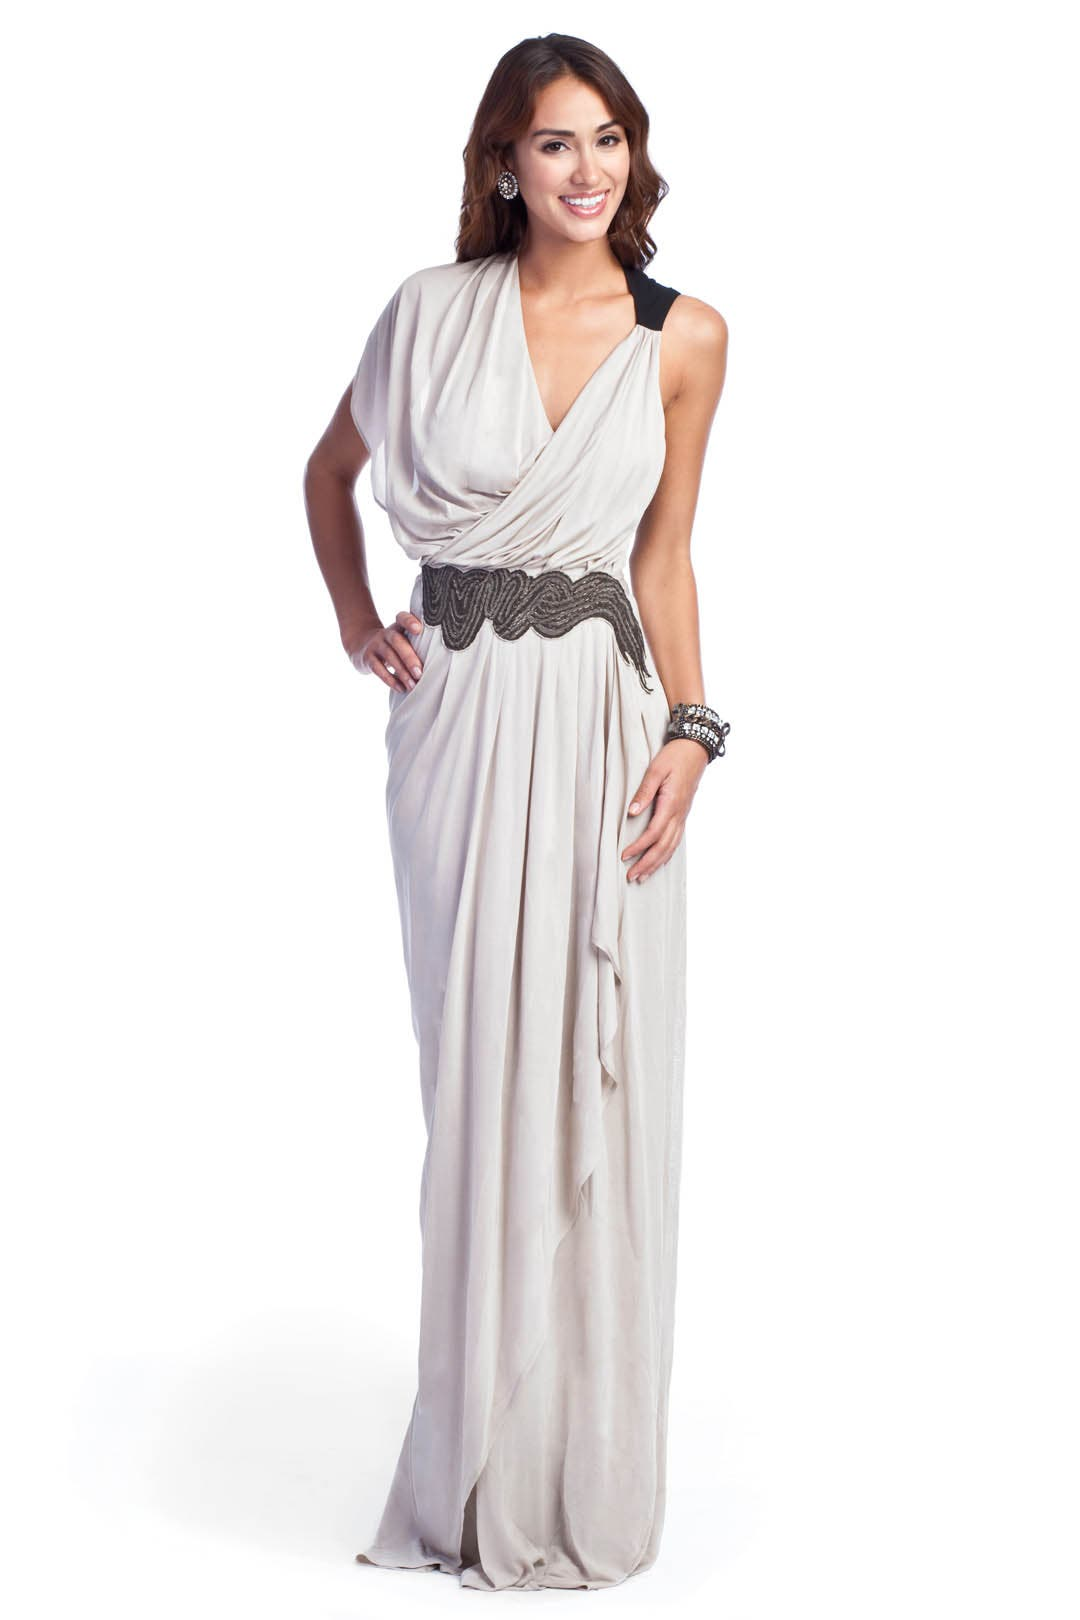 Athena The Admirer Gown by Yigal Azrouël